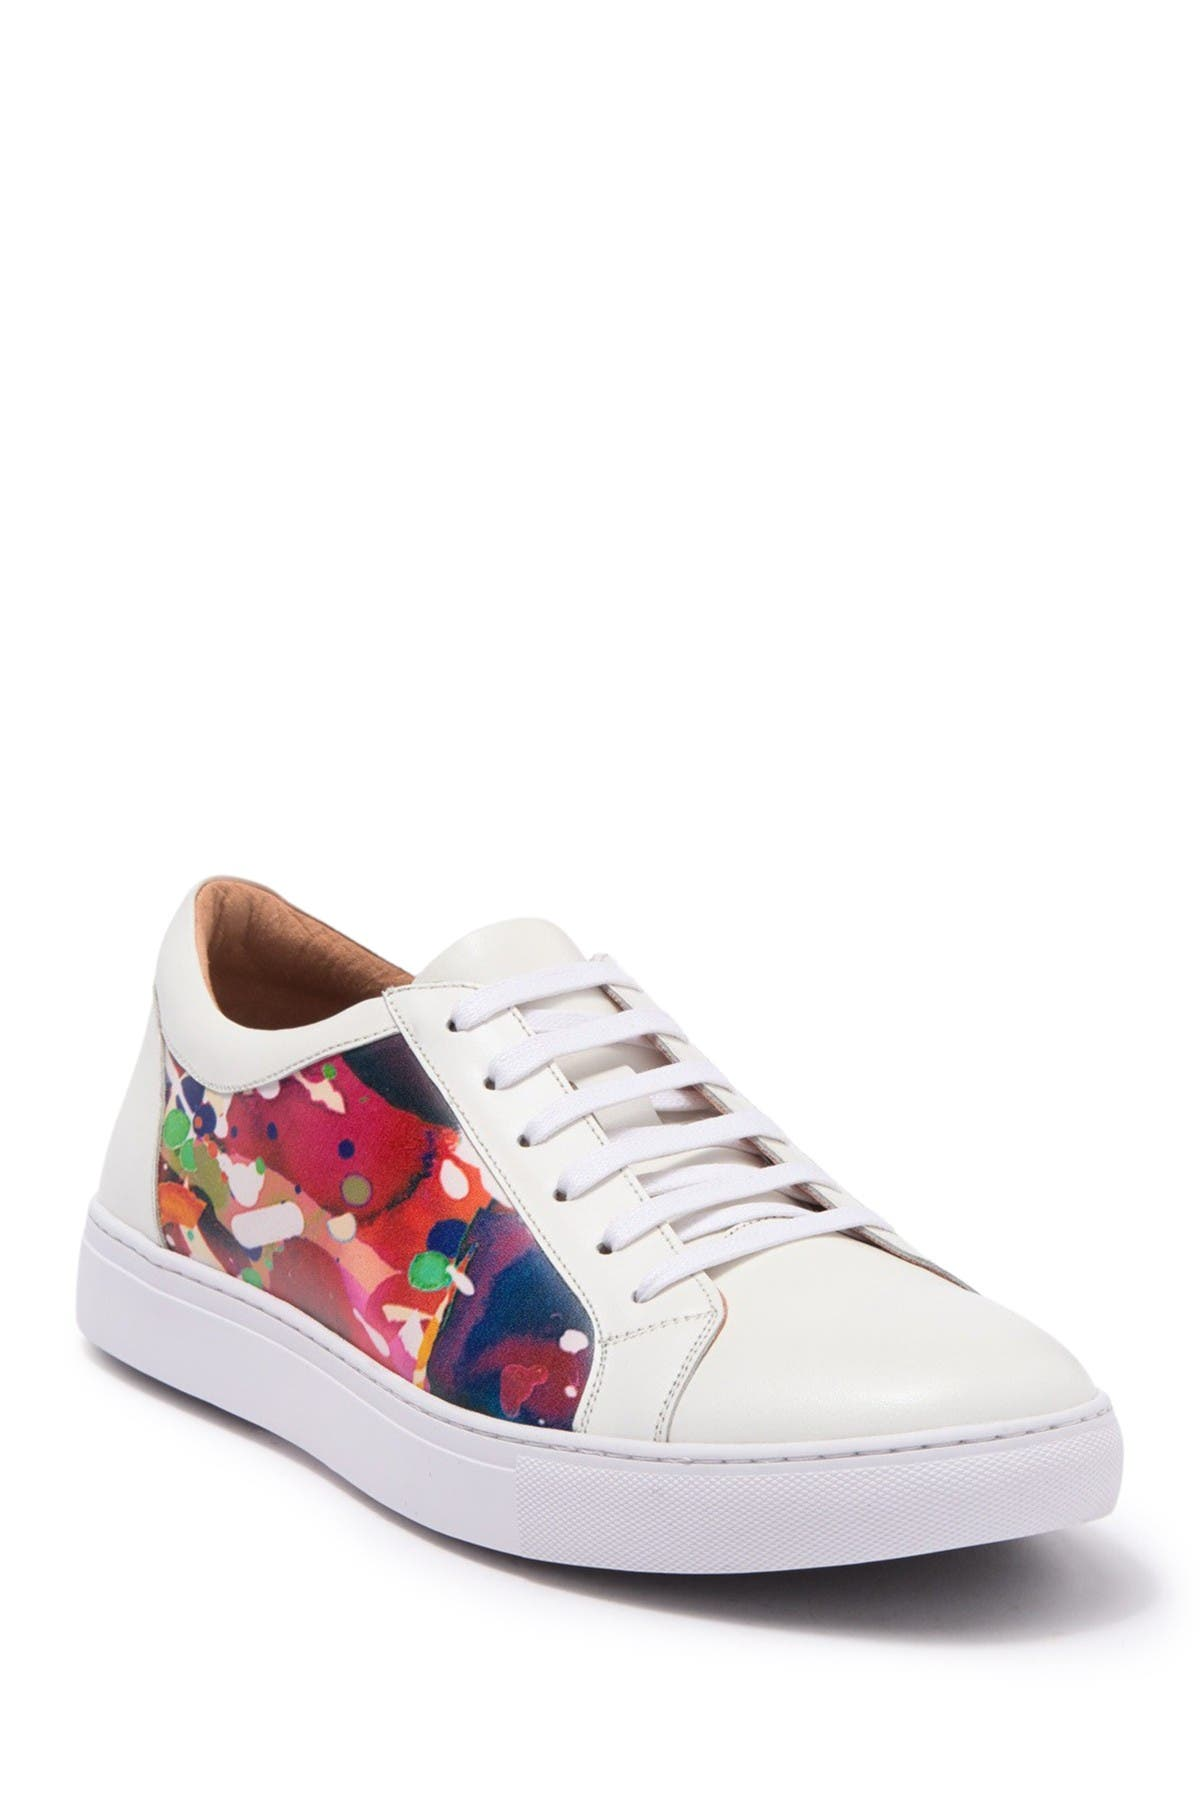 Image of Robert Graham Ignition Leather Sneaker